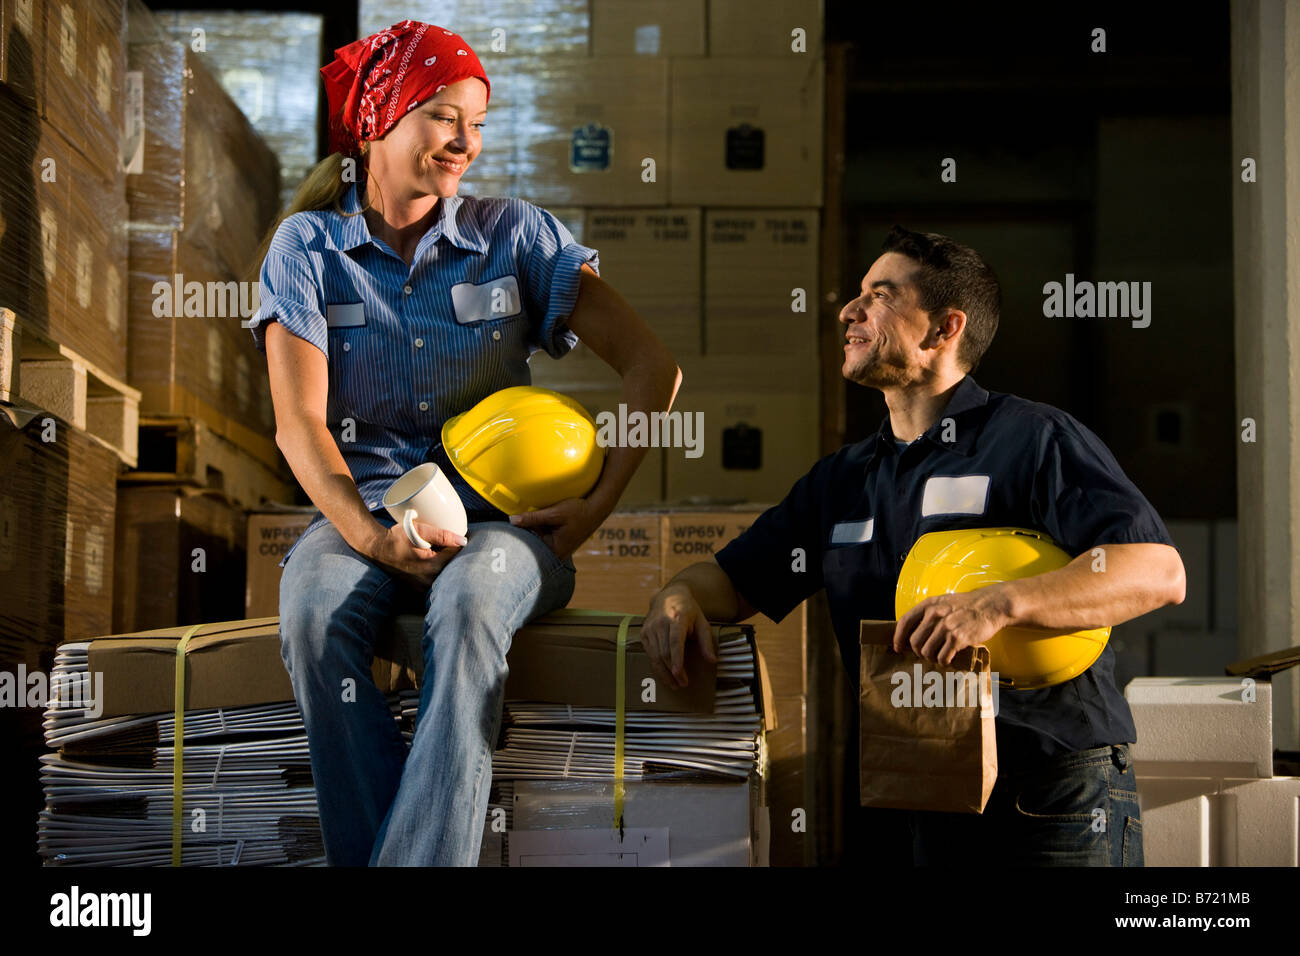 Two co-workers relax in storage warehouse - Stock Image